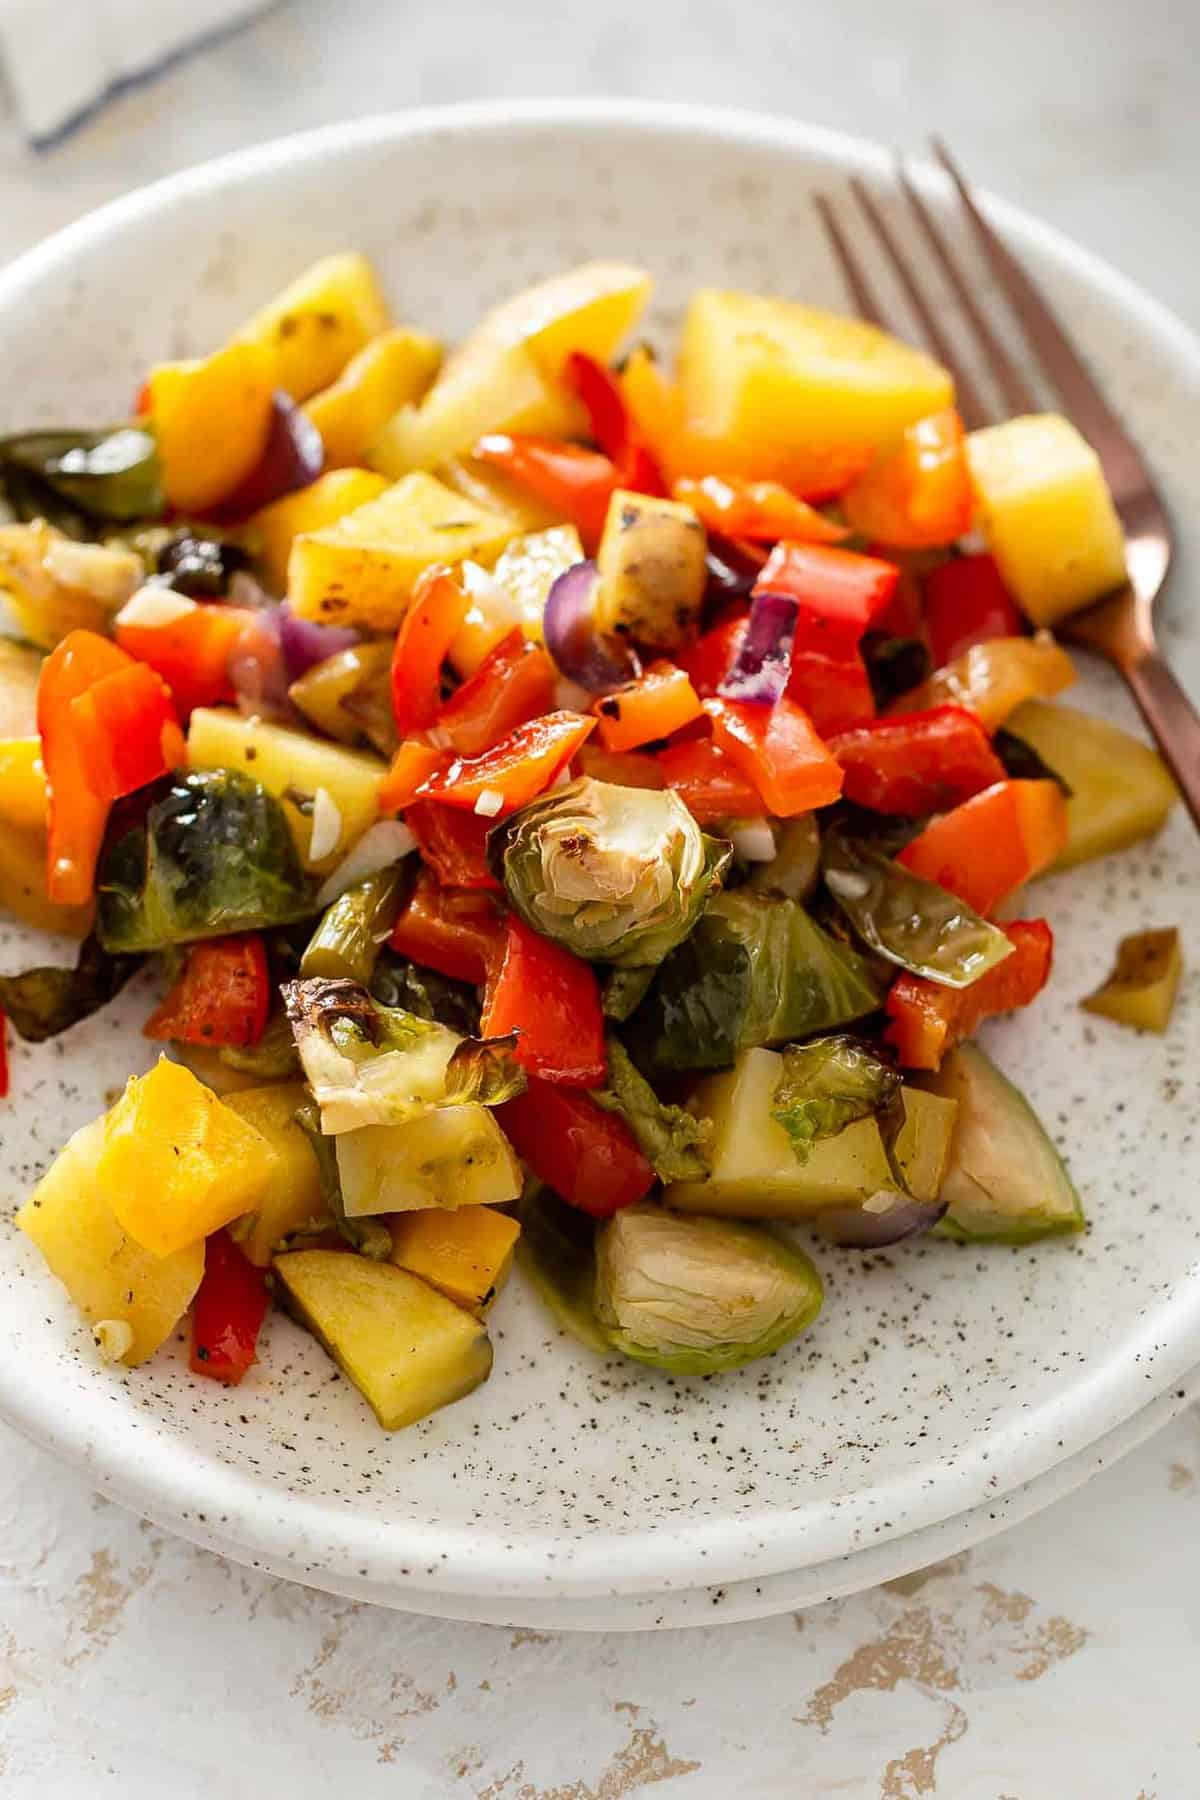 oven roasted vegetables on a plate